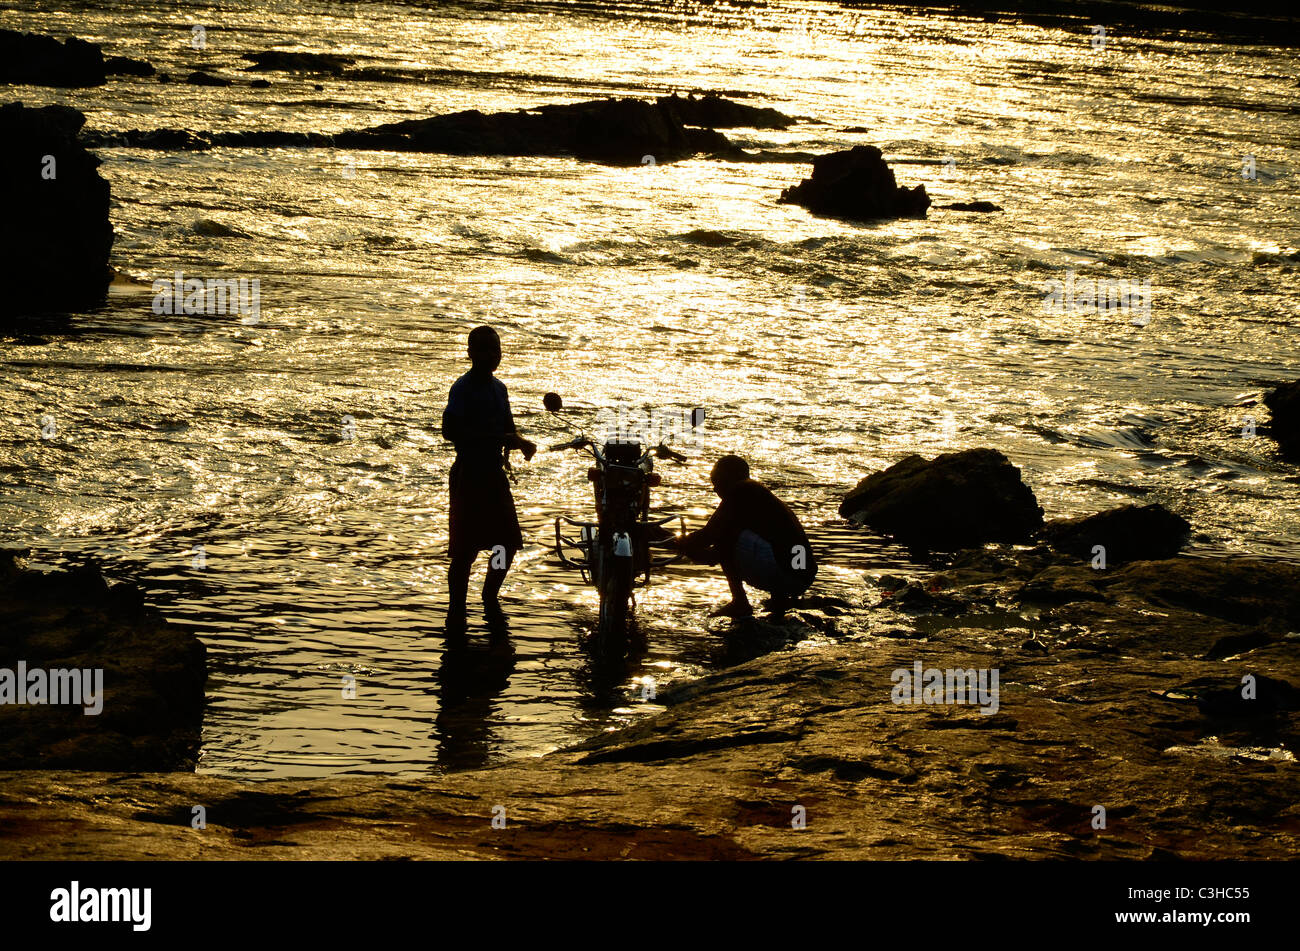 Democratic Republic of Congo in January 2011.Washin motorbike in Epulu river - Stock Image